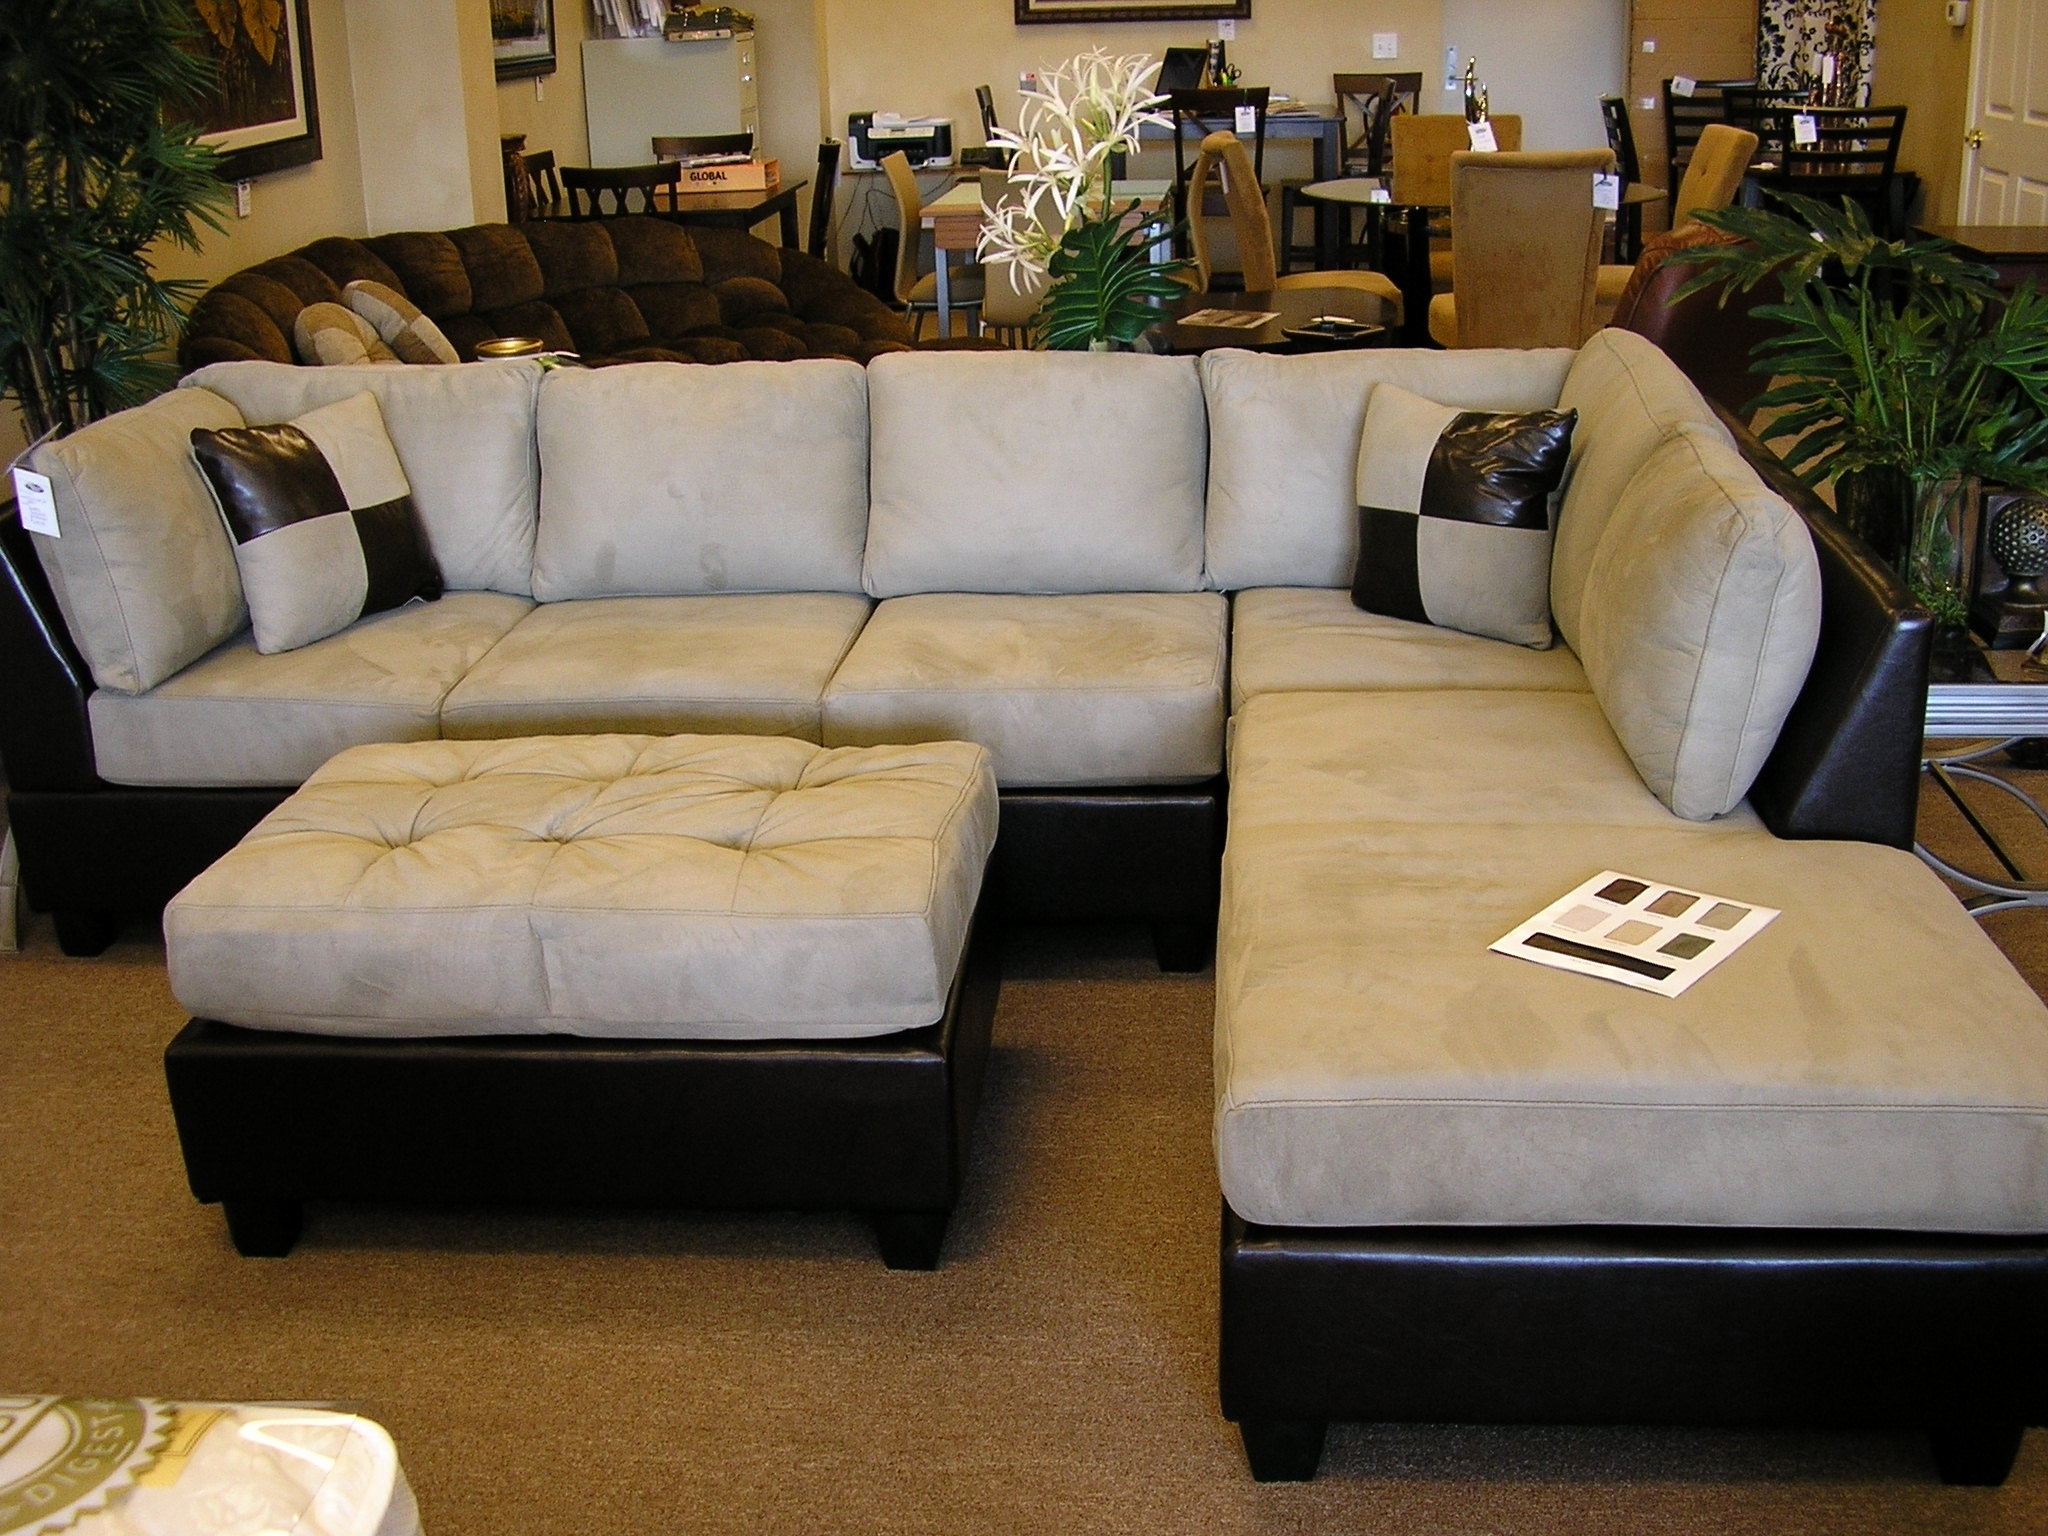 Used Armchair For Sale Lovely Sectional Sofa Re Mended Cheap Used pertaining to Used Sectional Sofas (Image 6 of 10)